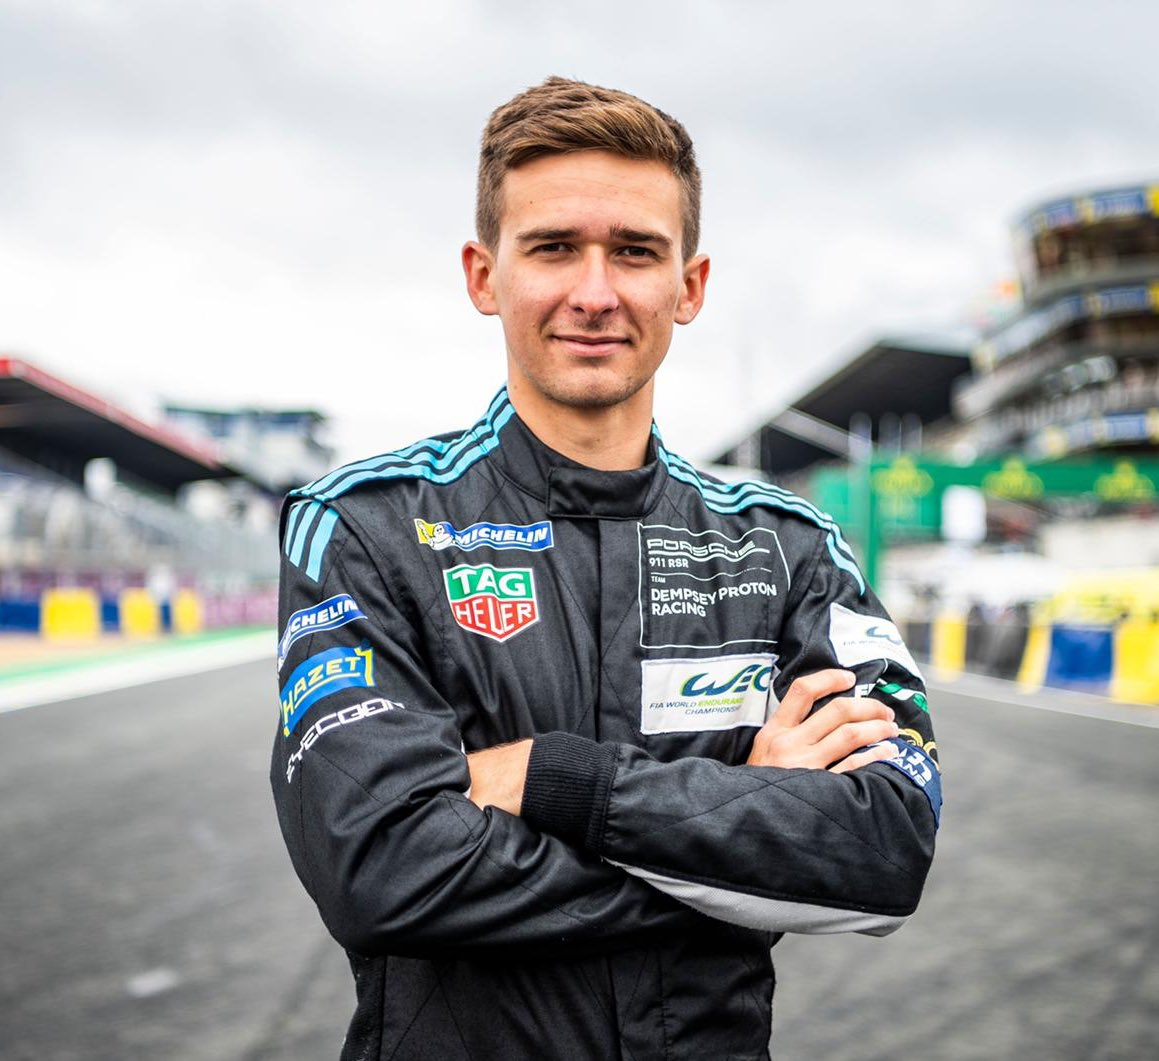 #LeMans24 - The starting drivers in the @PatrickDempsey @ProtonRacing #911RSR at the 87th @24hoursoflemans will be @mattcampbell22_ (No 77), @Cairoli96 (88) and @VinceAbril (78). Good luck! @Porsche @FIAWEC